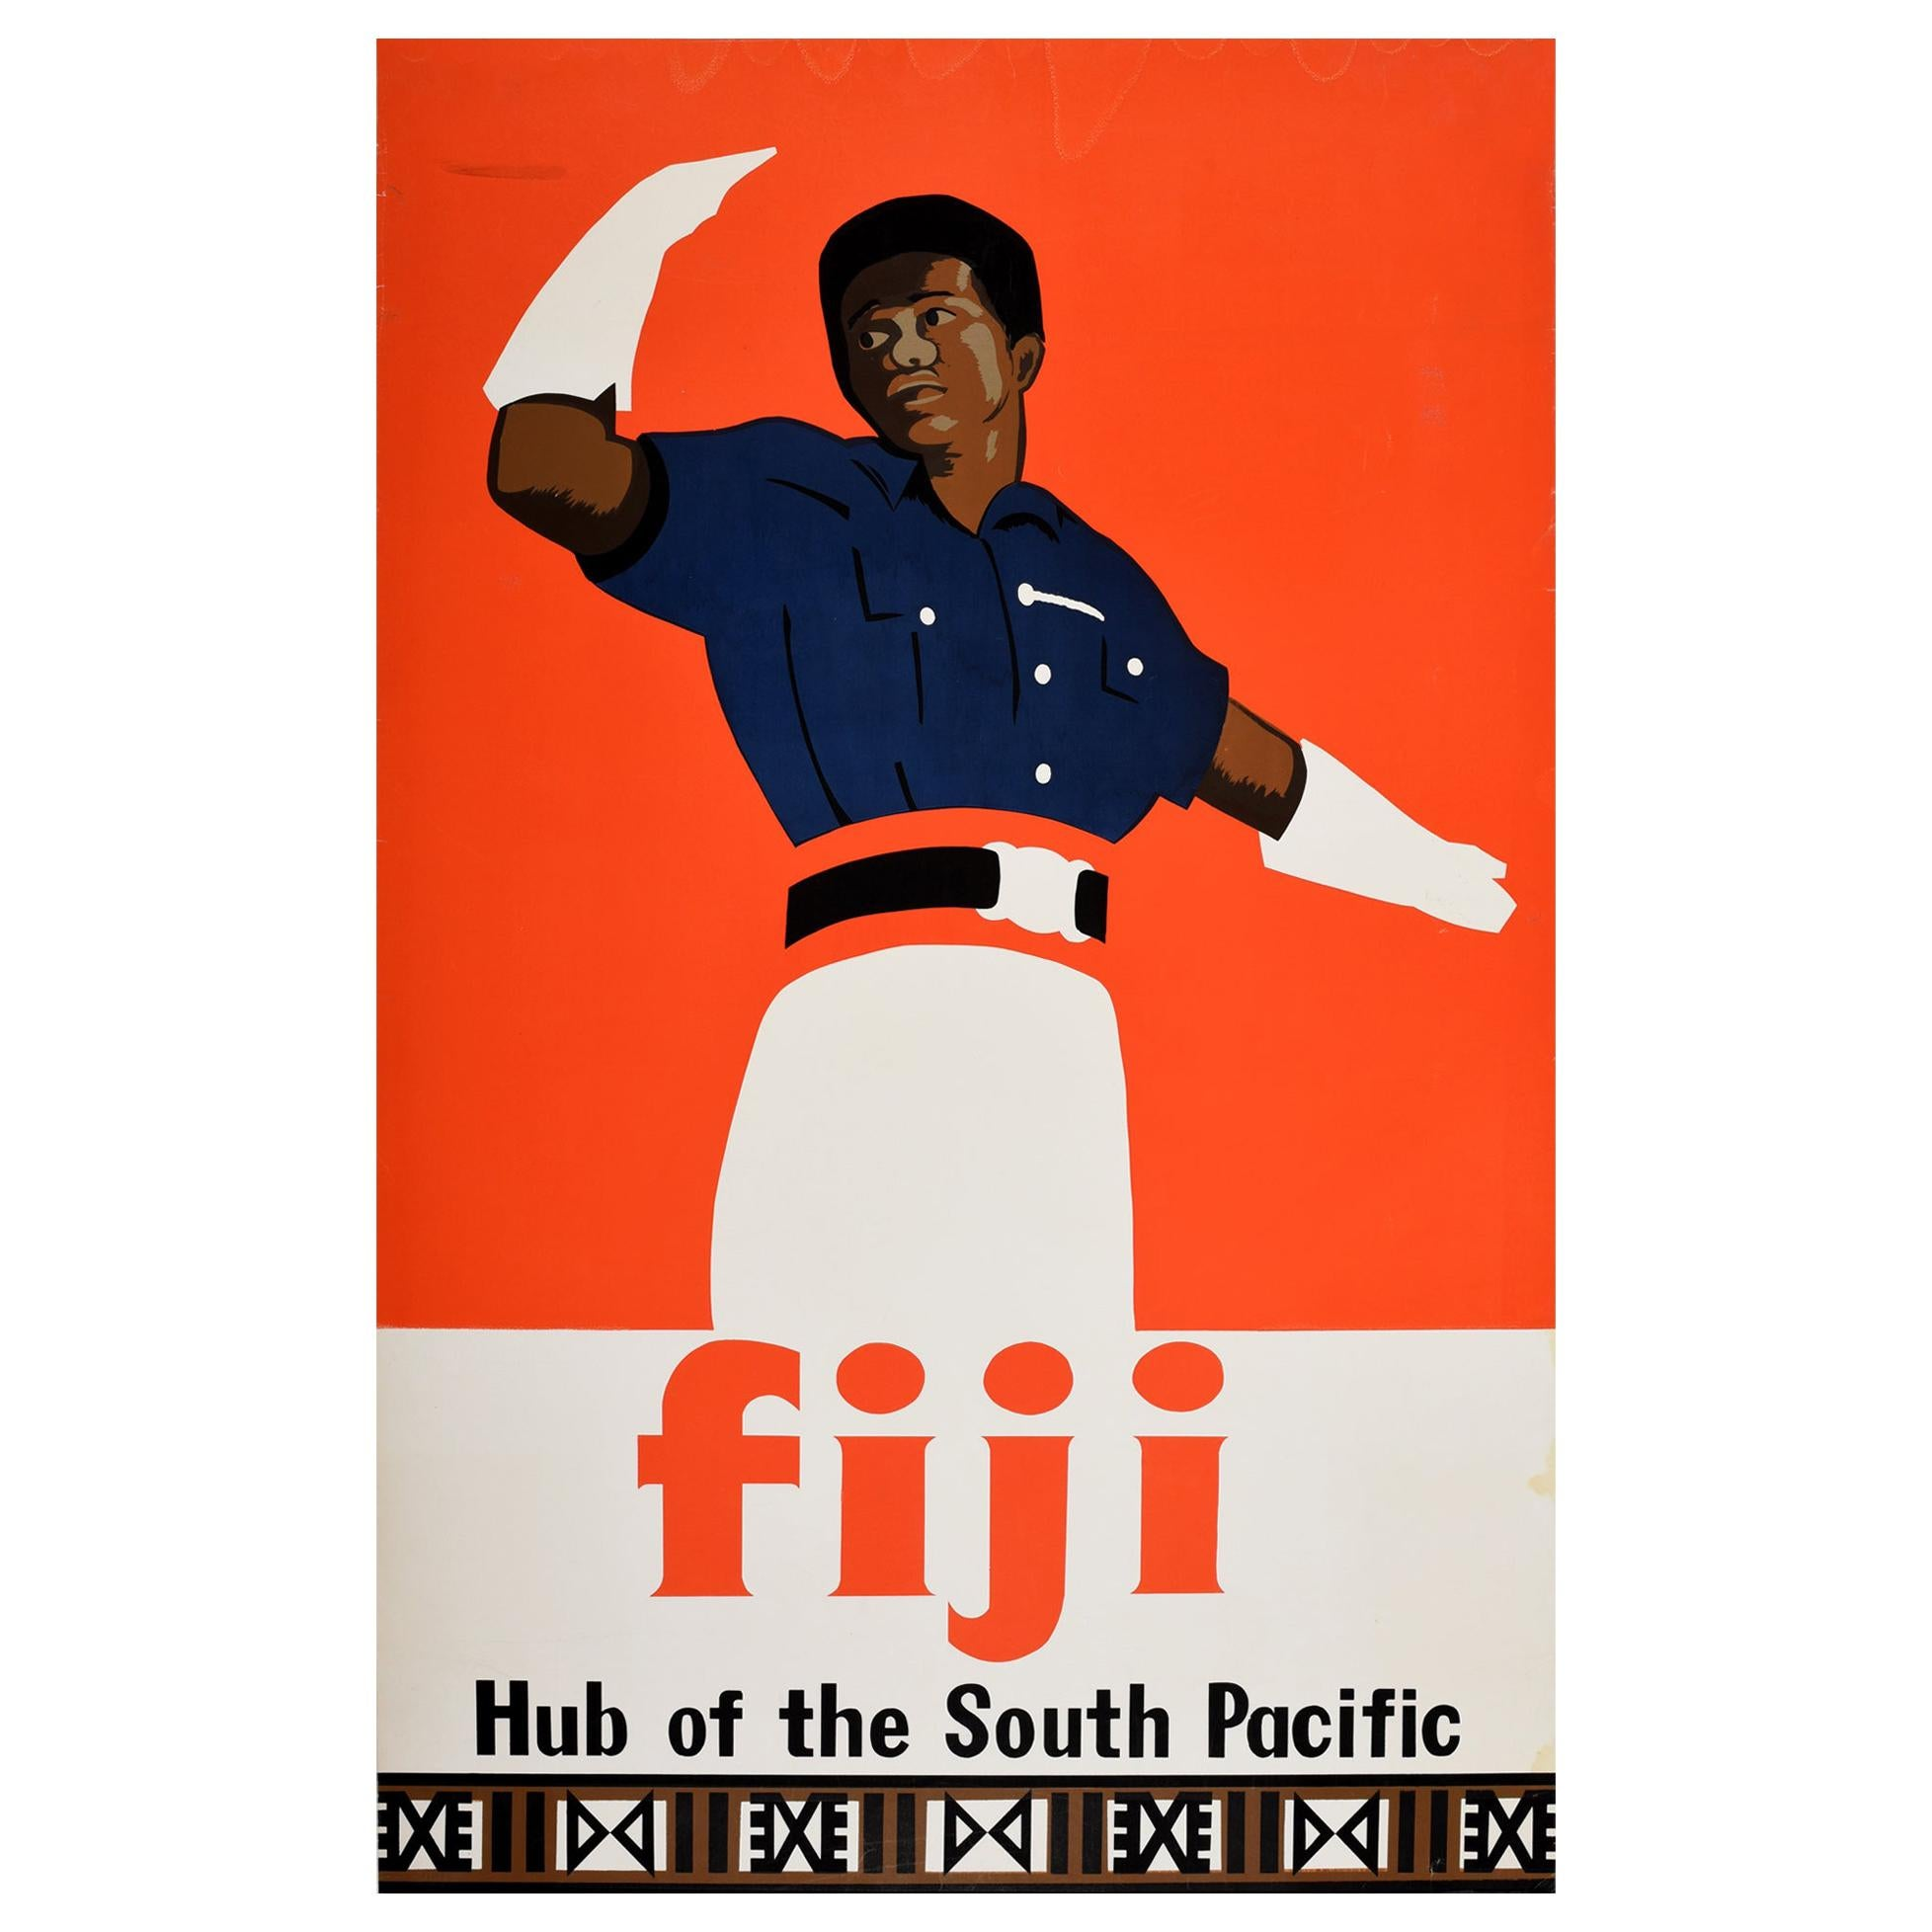 Original Vintage Travel Poster For Fiji Hub Of The South Pacific Ocean Islands